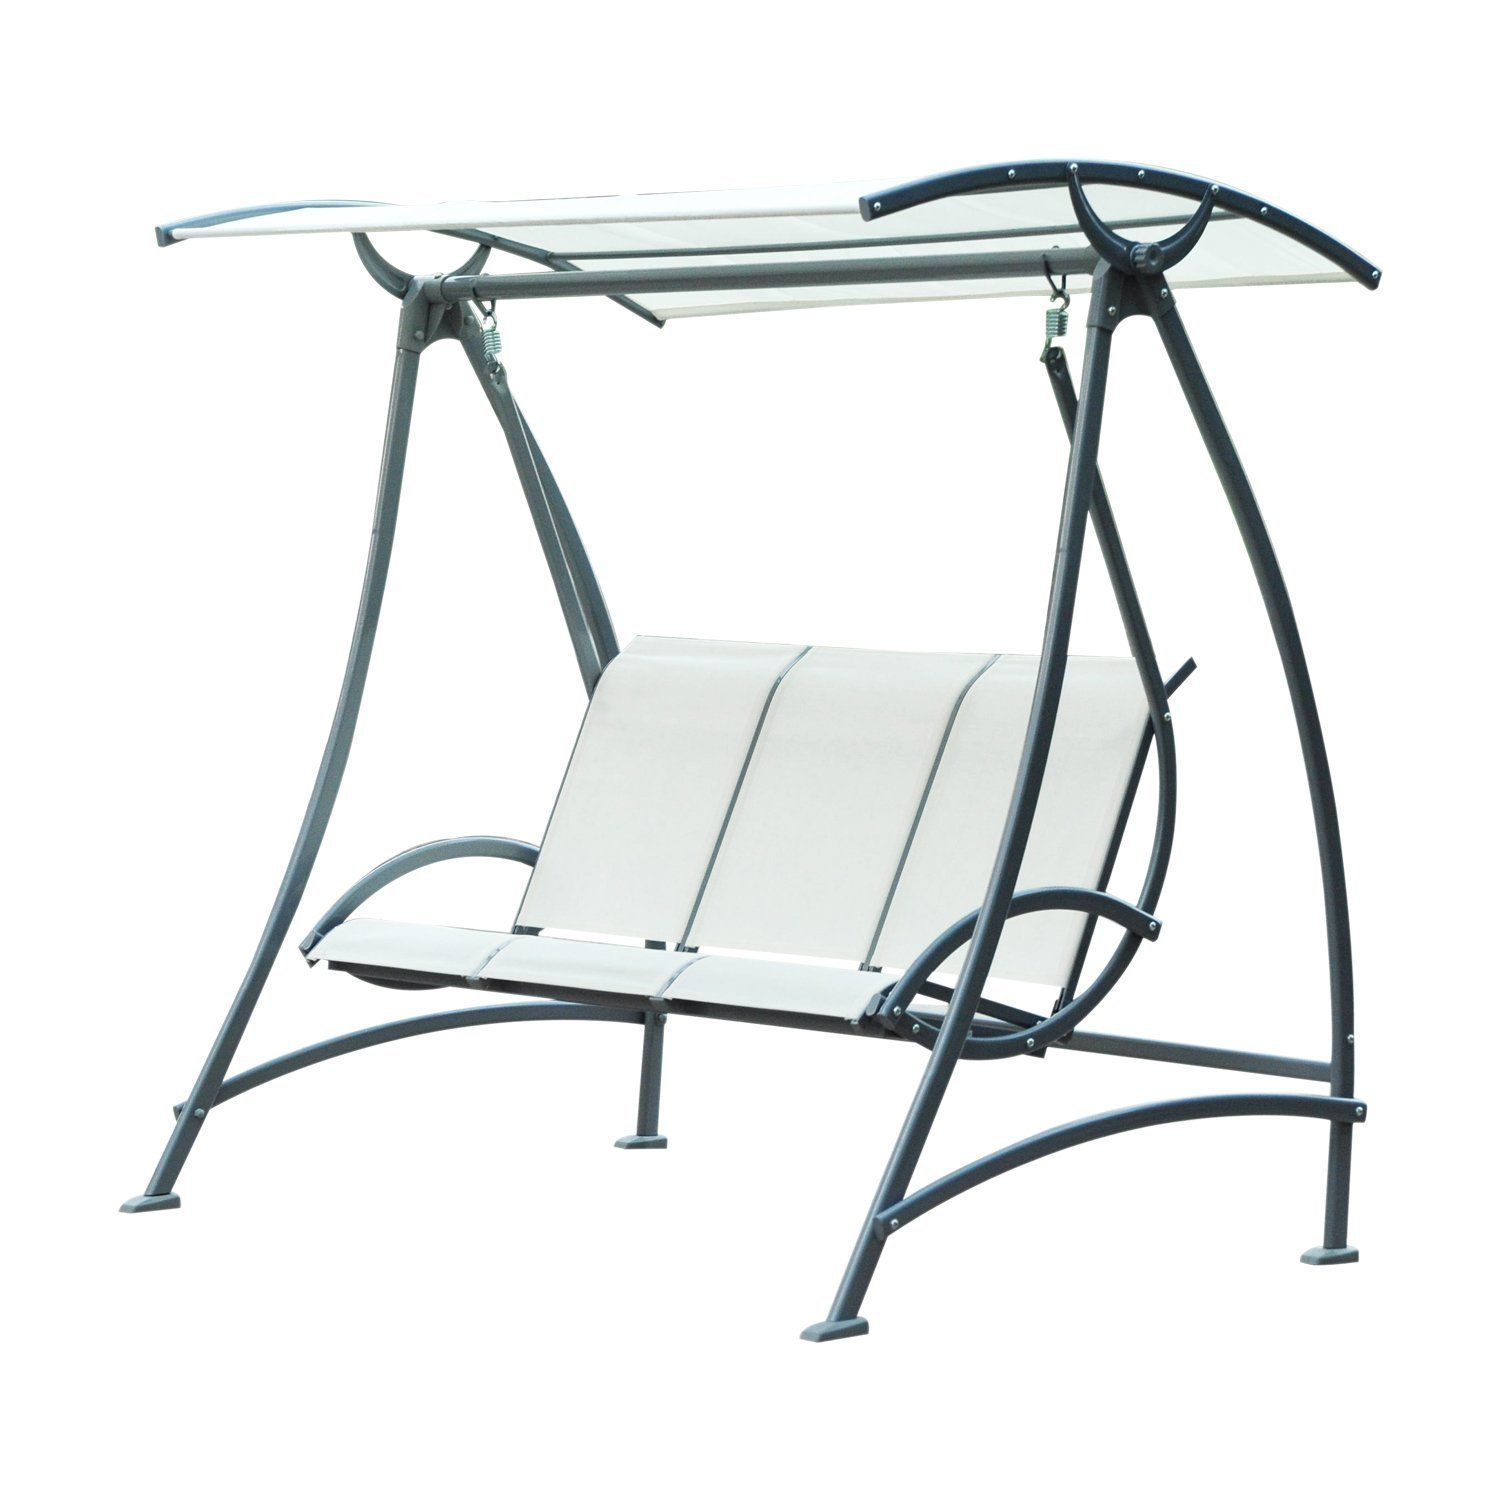 Outsunny Garden 3 Seater Swing Chair Patio Outdoor Swinging Hammock Canopy Bench Seat Porch Deck Furniture  sc 1 st  Pinterest & Outsunny Garden 3 Seater Swing Chair Patio Outdoor Swinging ...